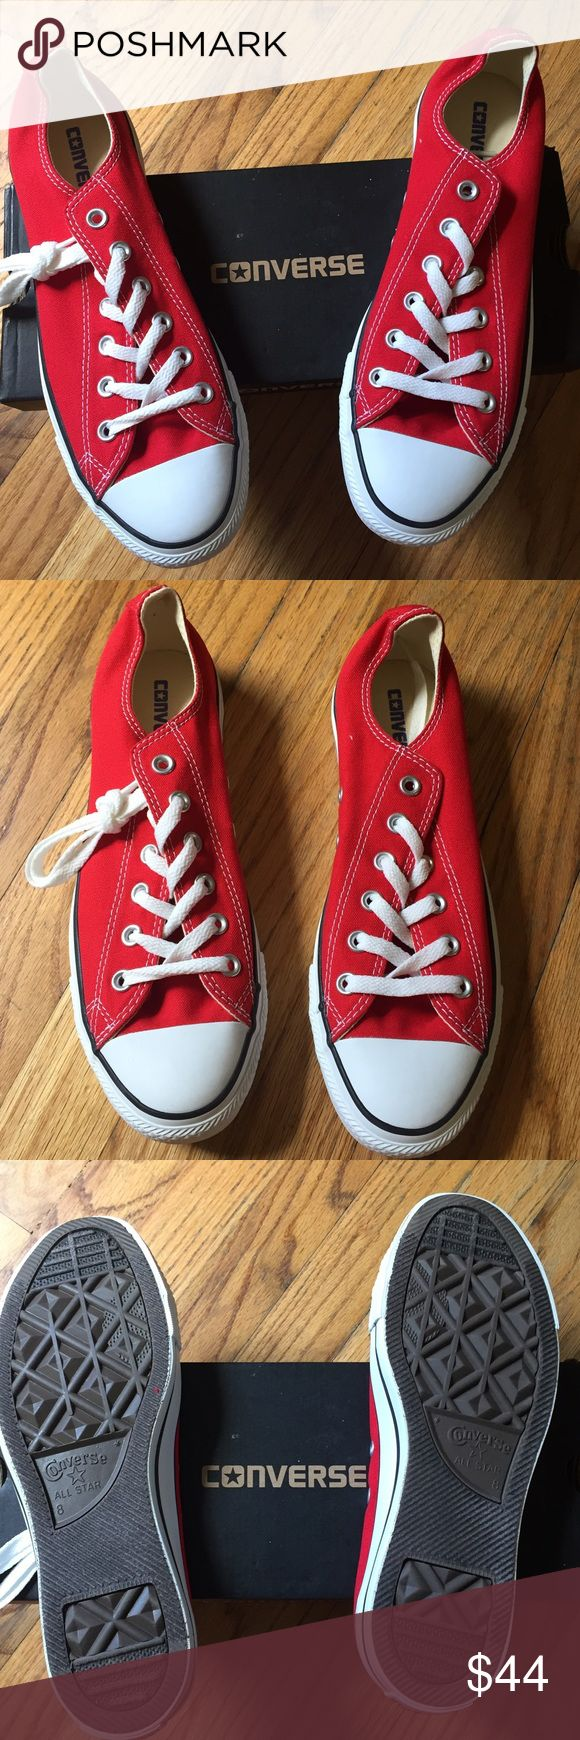 NWT Red Converse Unisex Sneakers. Size 8 M & 10 W Brand New still in box. Red Converse sneakers. Unisex. Mens 8 and Woman's 10. Converse Shoes Sneakers